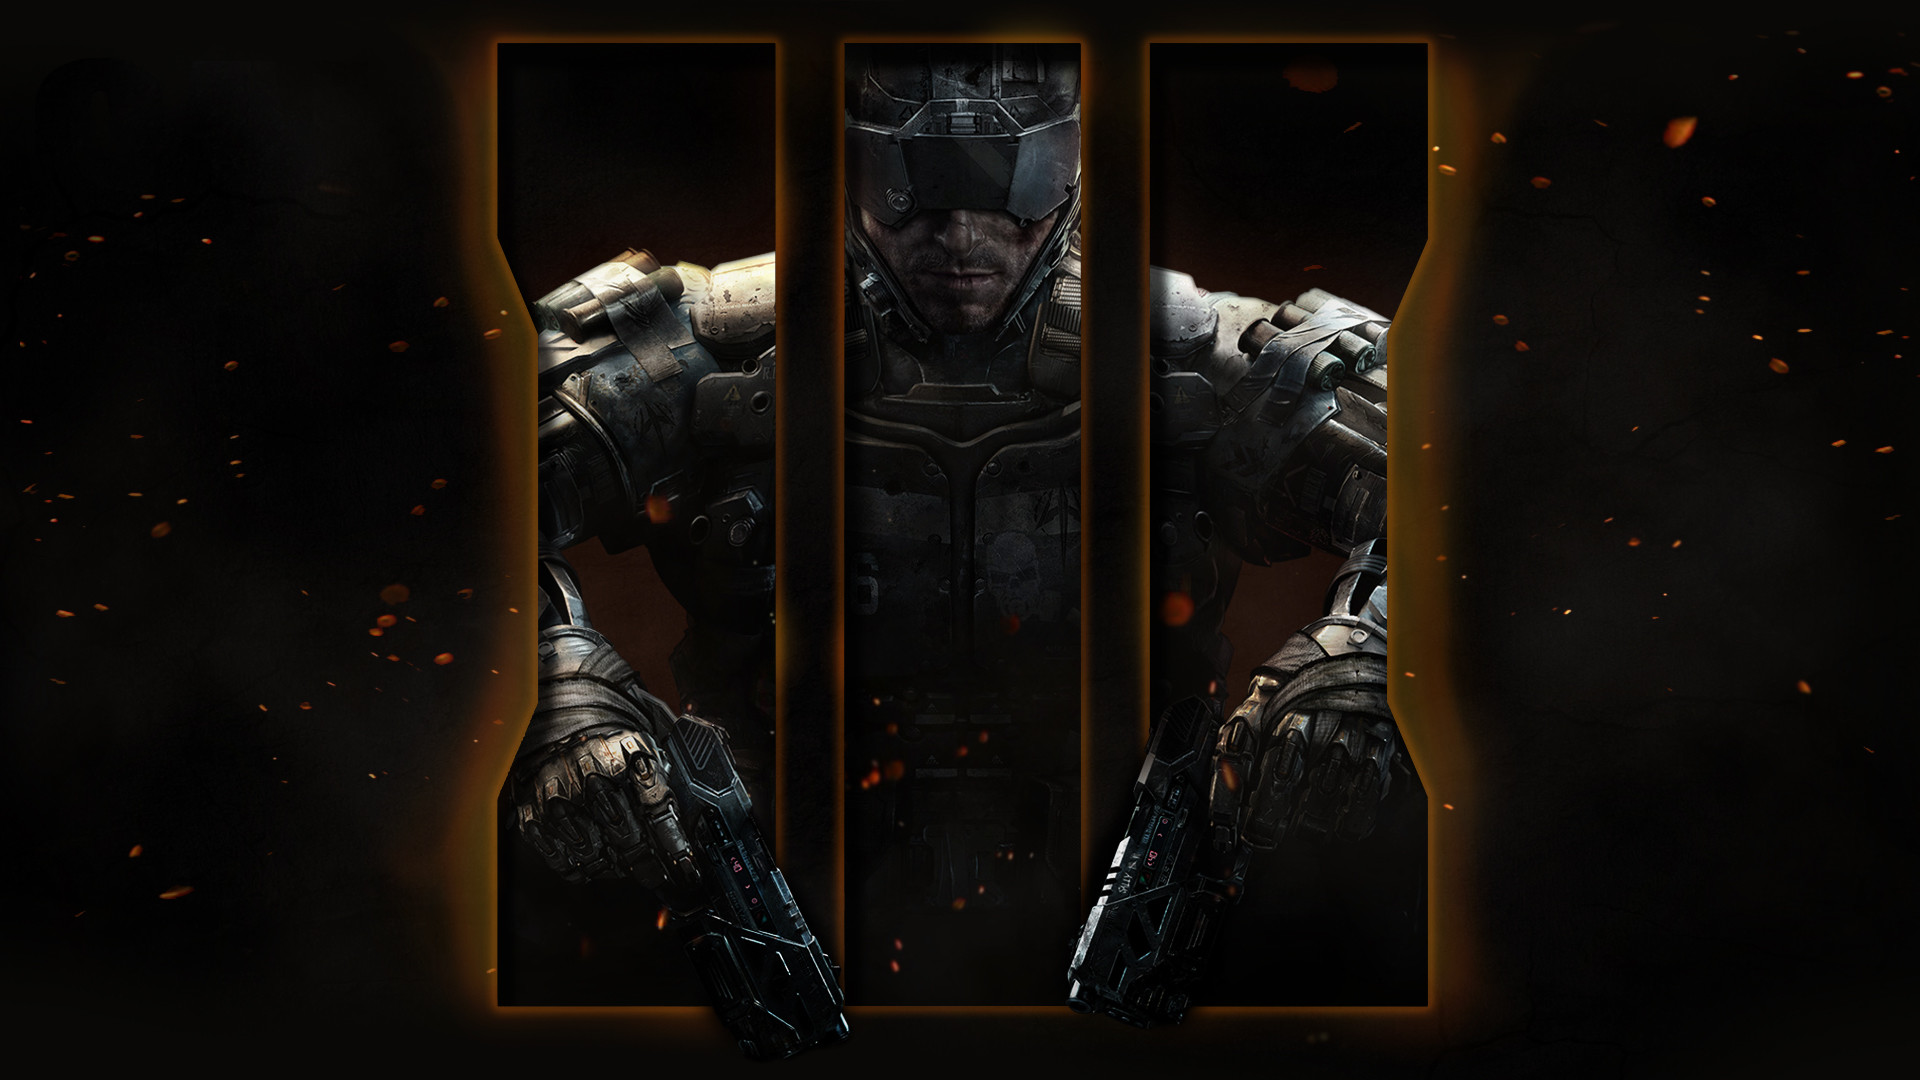 Call Of Duty Black Ops HD Wallpaper | Wallpapers | Pinterest | Black ops  and Hd wallpaper